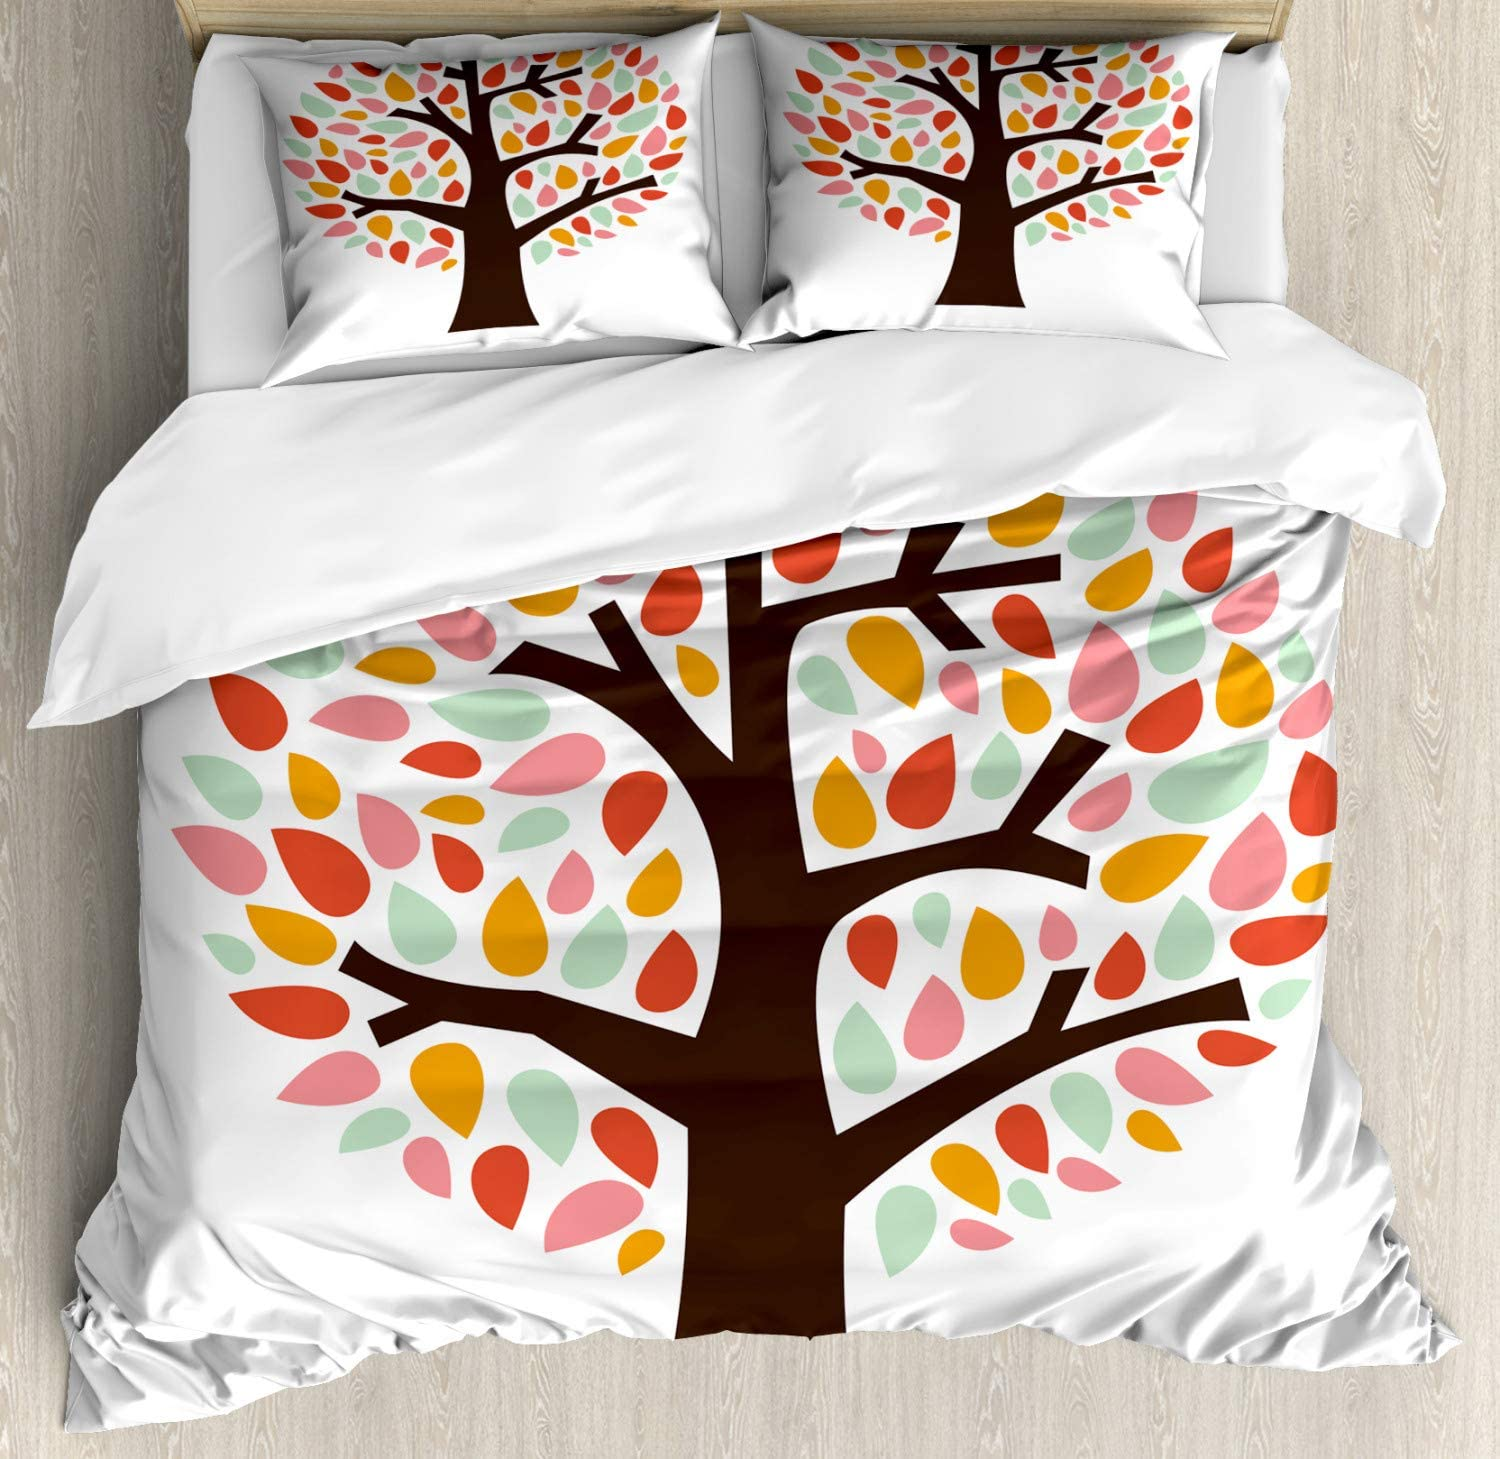 Lunarable Pastel Duvet Cover Set, Colorful Silhouettes of Leaves on an Abstract Tree Nature Springtime Design, Decorative 3 Piece Bedding Set with 2 Pillow Shams, Queen Size, Multicolor